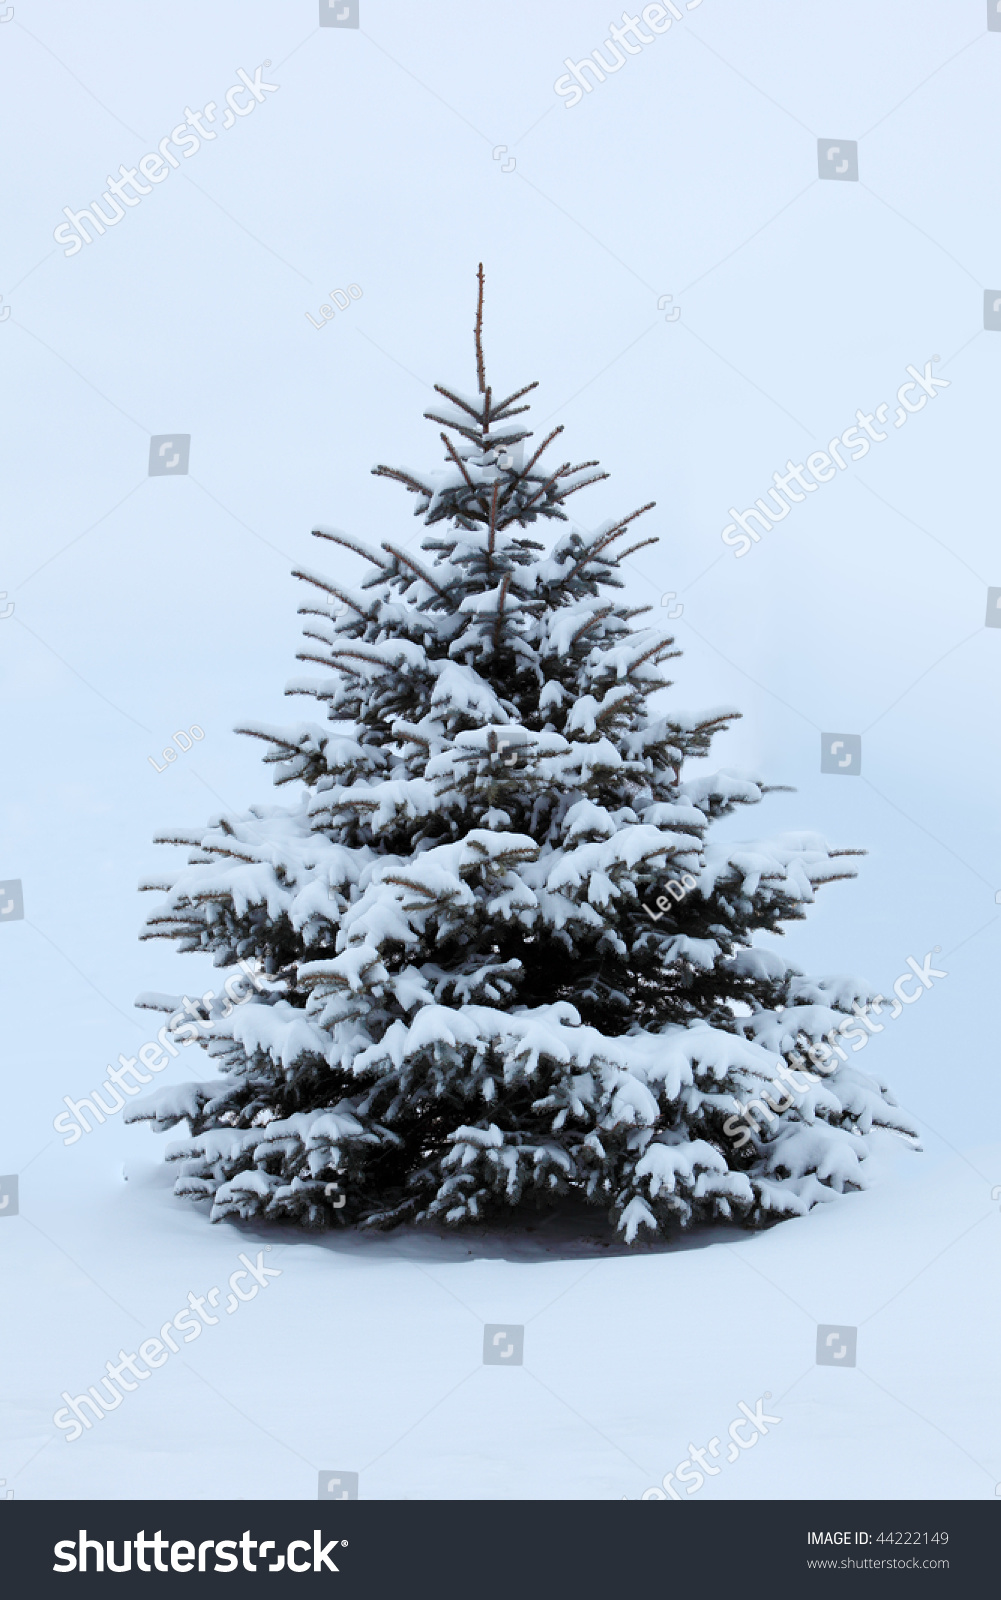 Single pine tree covered with snow in the winter stock - Images of pine trees in snow ...